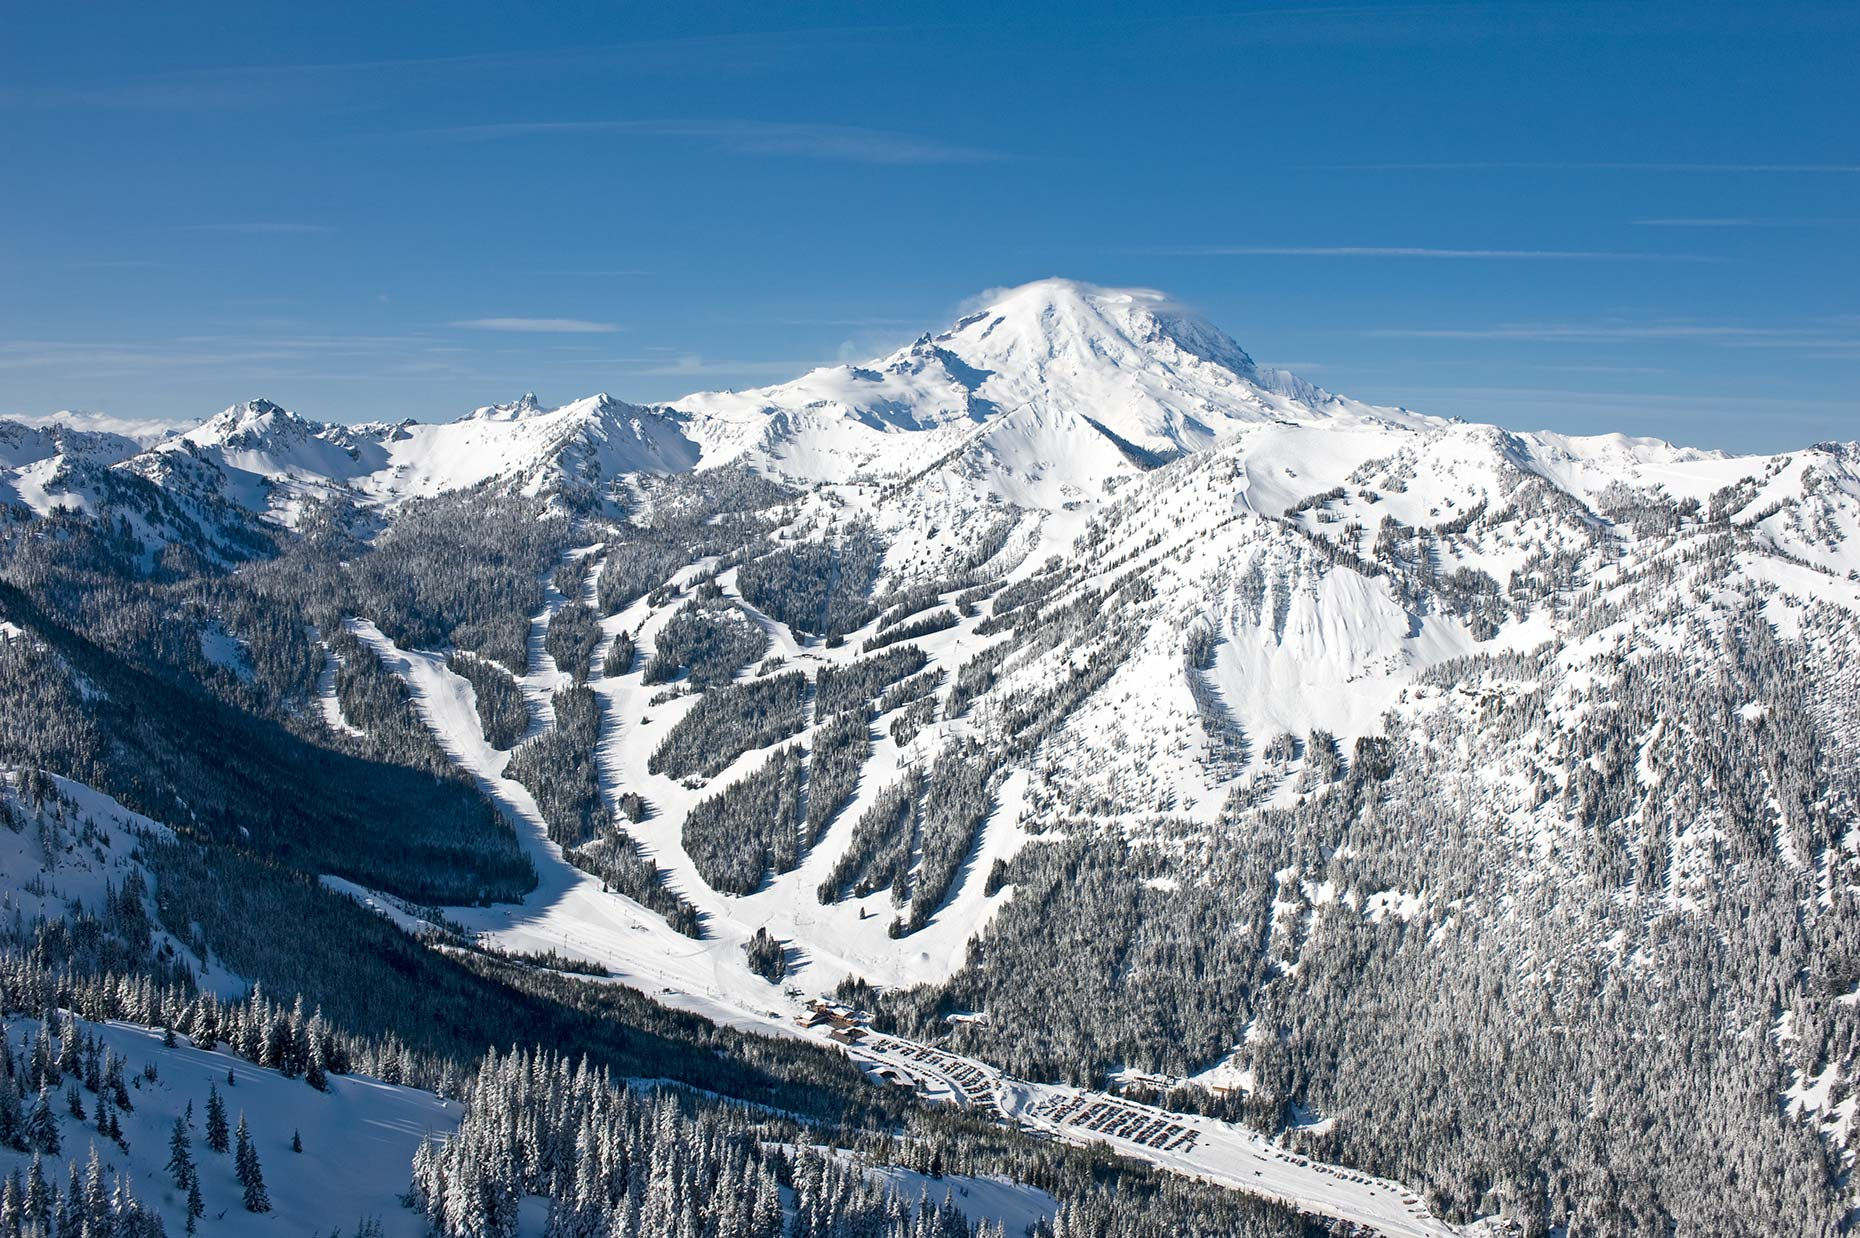 Ian-Coble-Resort-Crystal-Mountain-Skiing-Scenic-Helicopter